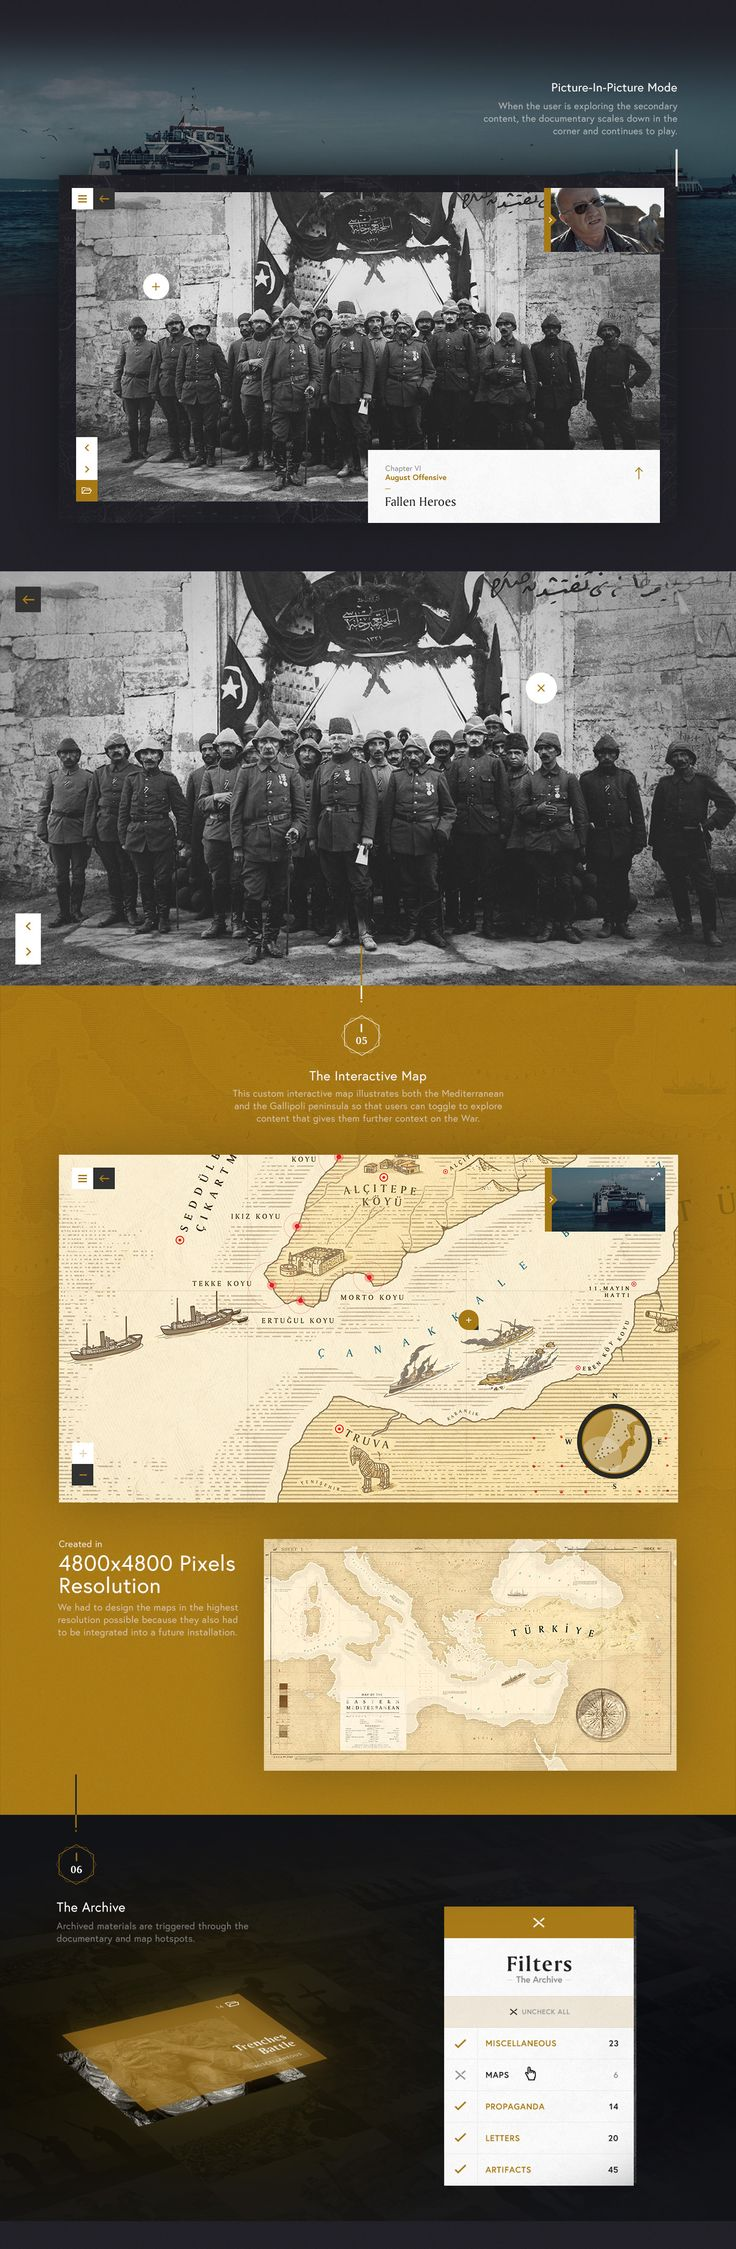 Sons of Gallipoli is a multi-layered, interactive documentary commemorating the 100th anniversary of the WWI Battle of Gallipoli. It follows the stories of two modern-day mothers – one Turkish and one Australian – as they reflect on their sons' legacies. …